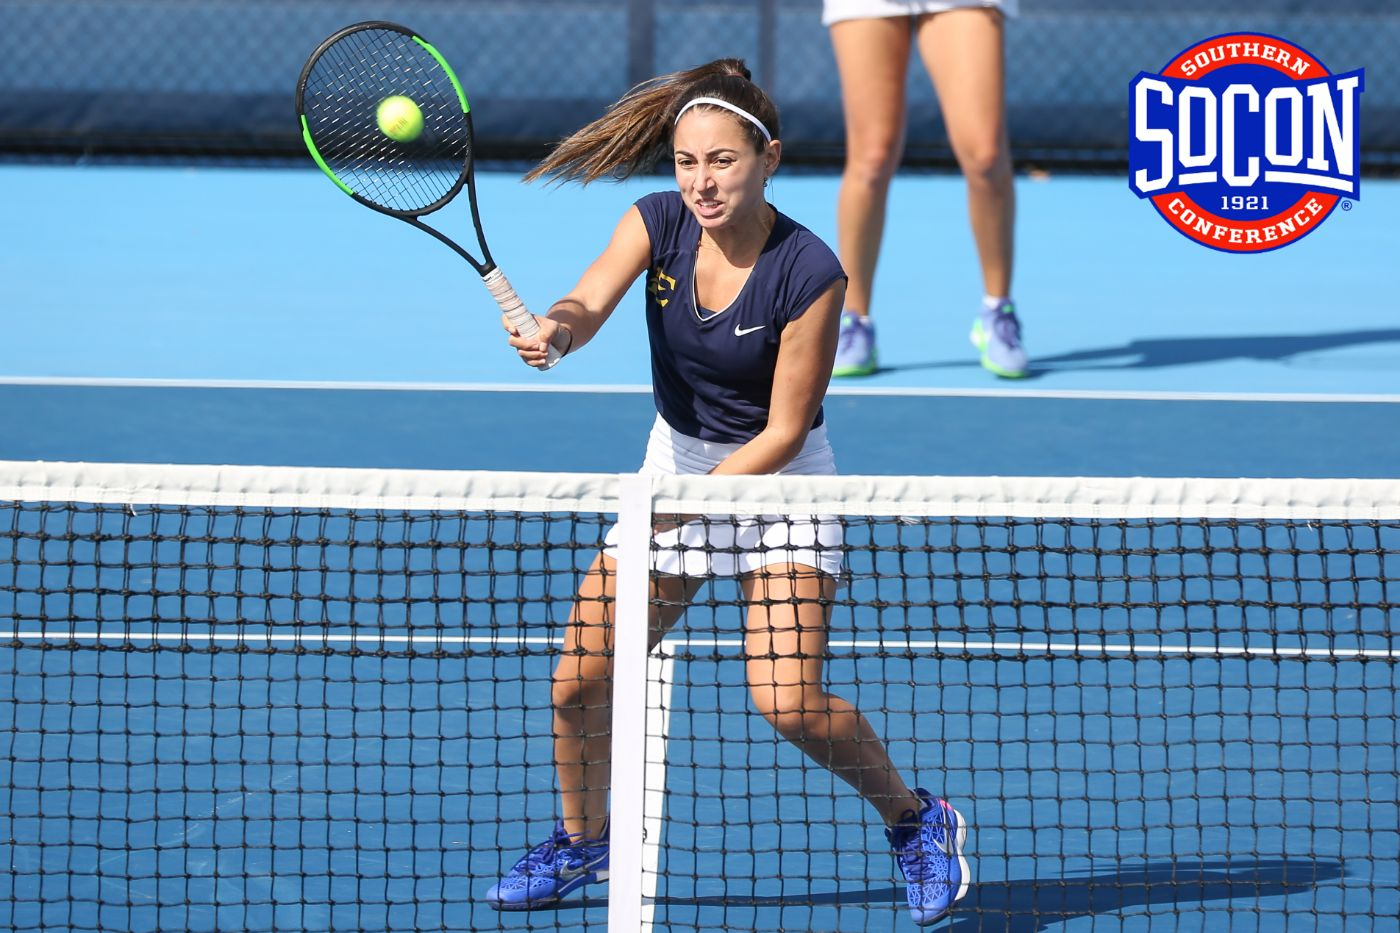 Pereira named SoCon Player of the Week